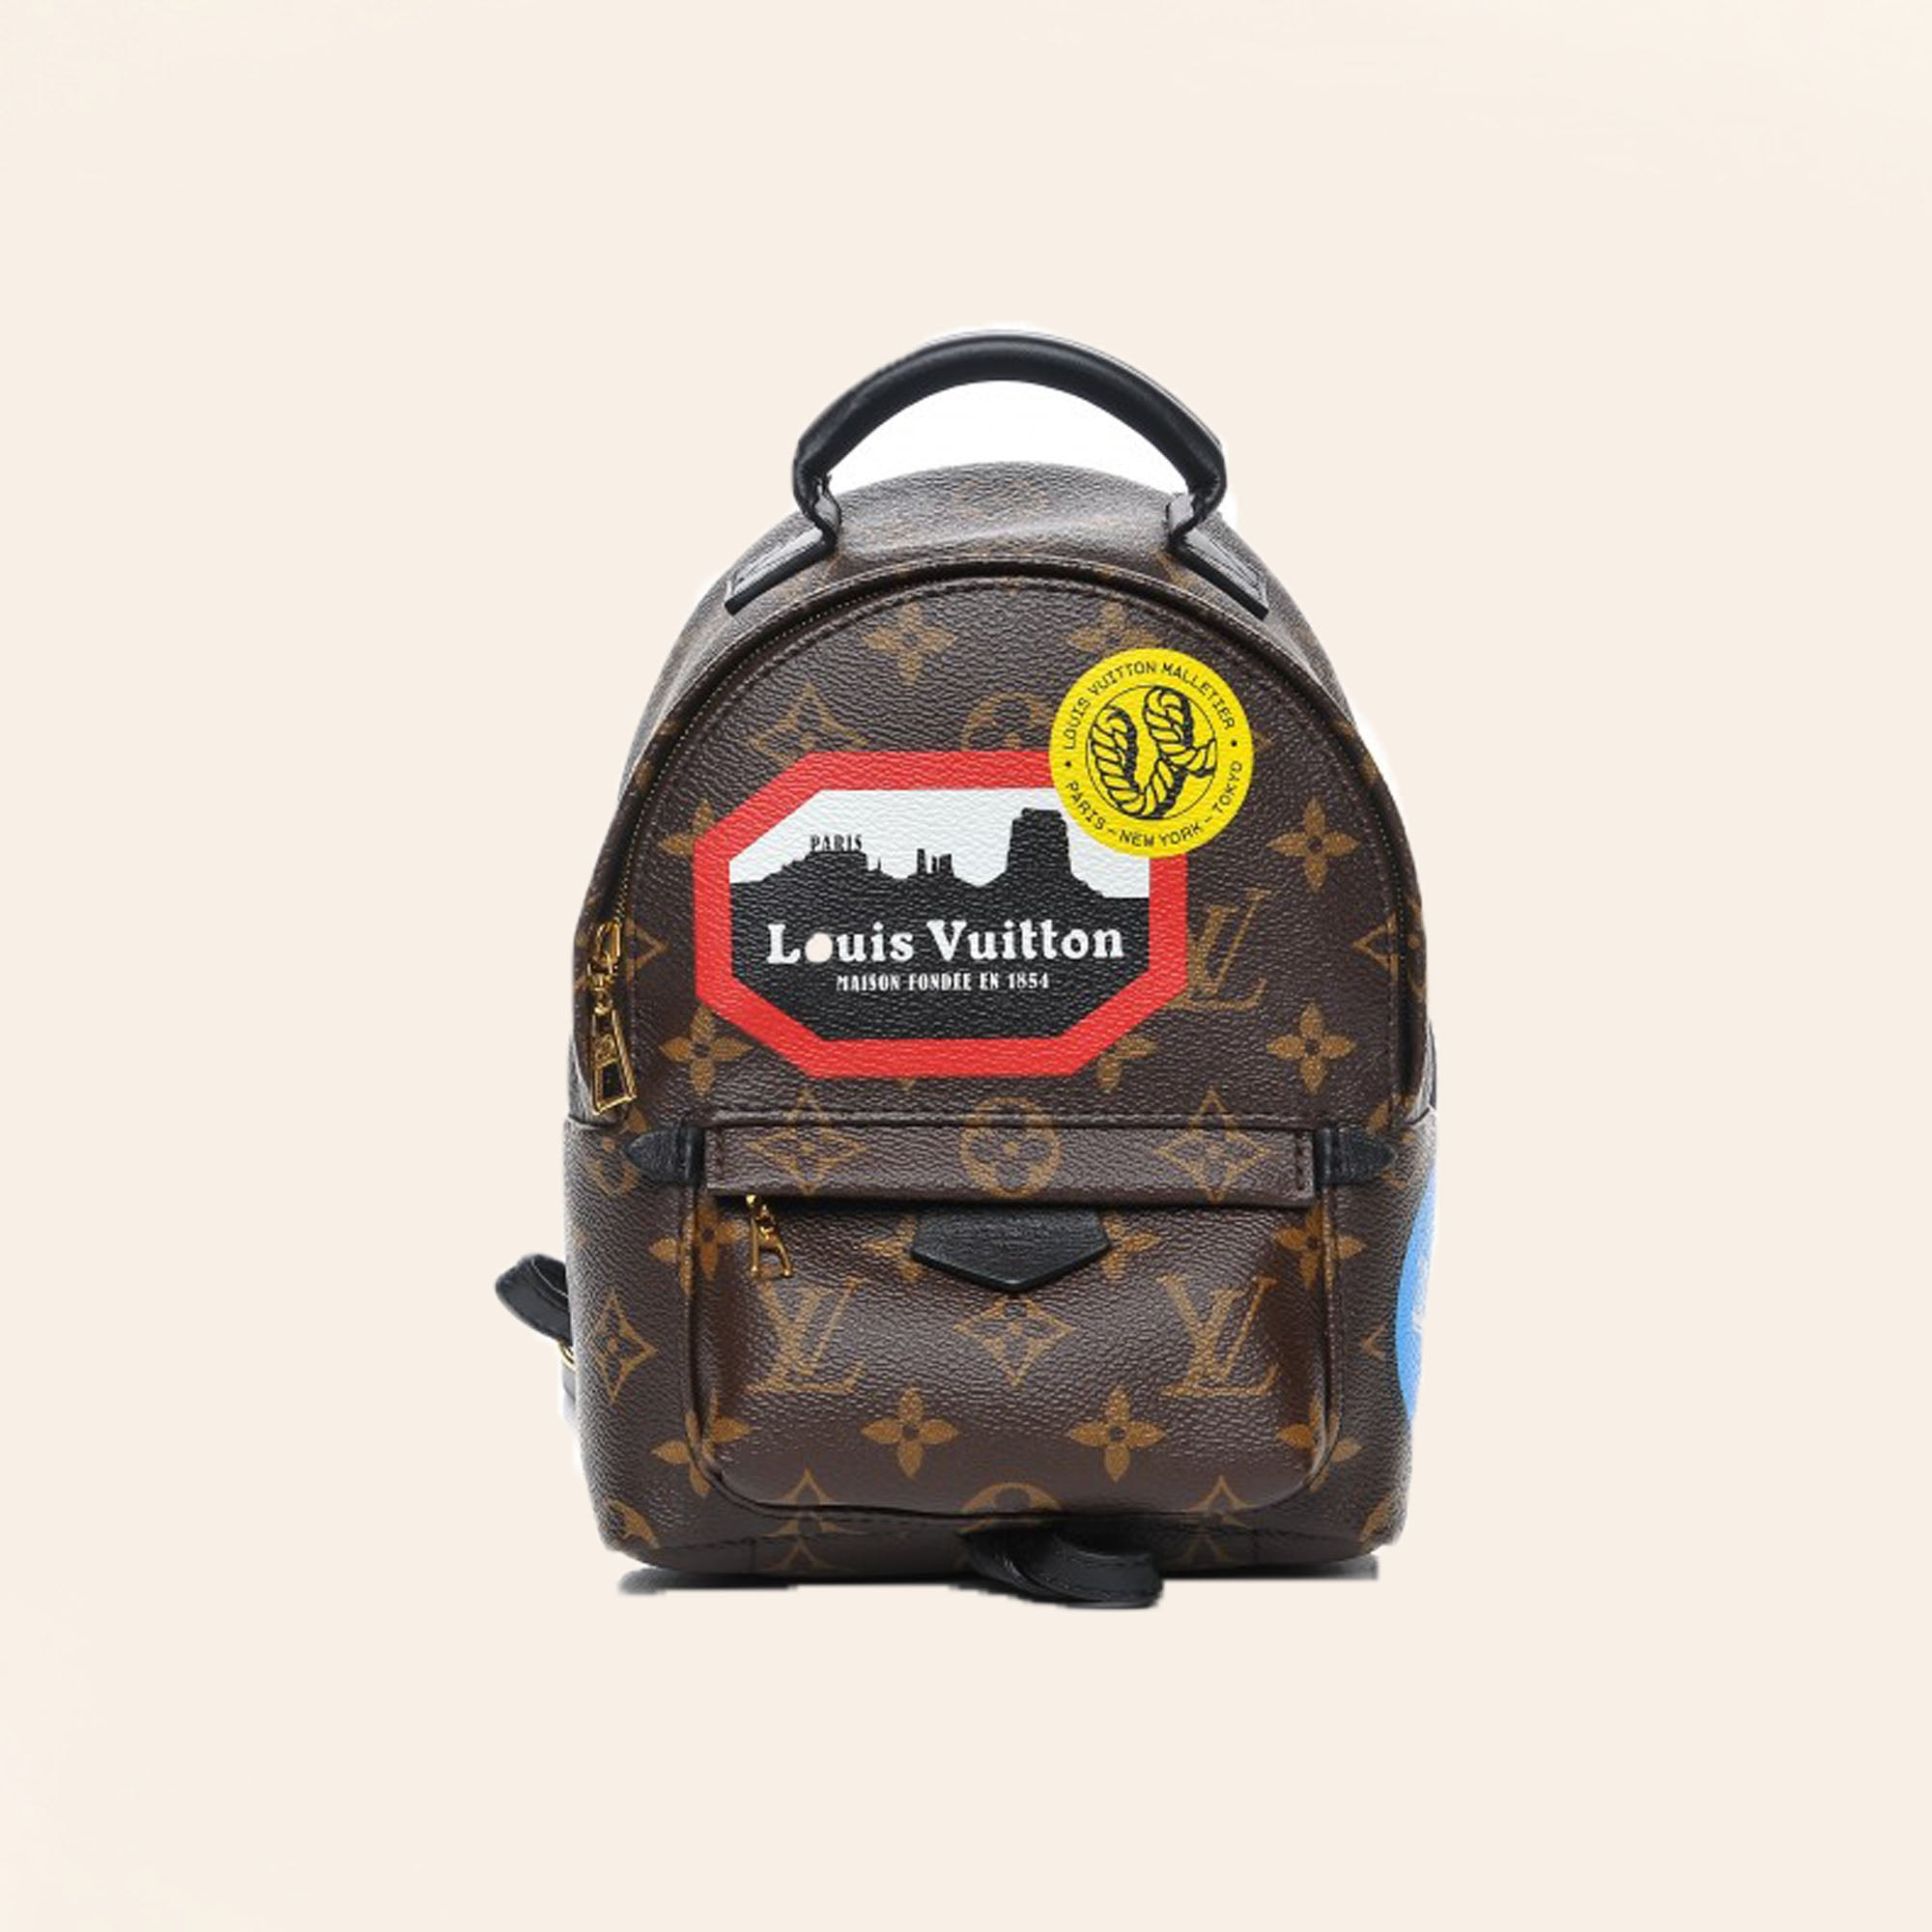 085be84fc8bd Louis Vuitton | World Tour Monogram Palm Springs Backpack | Mini -  The-Collectory